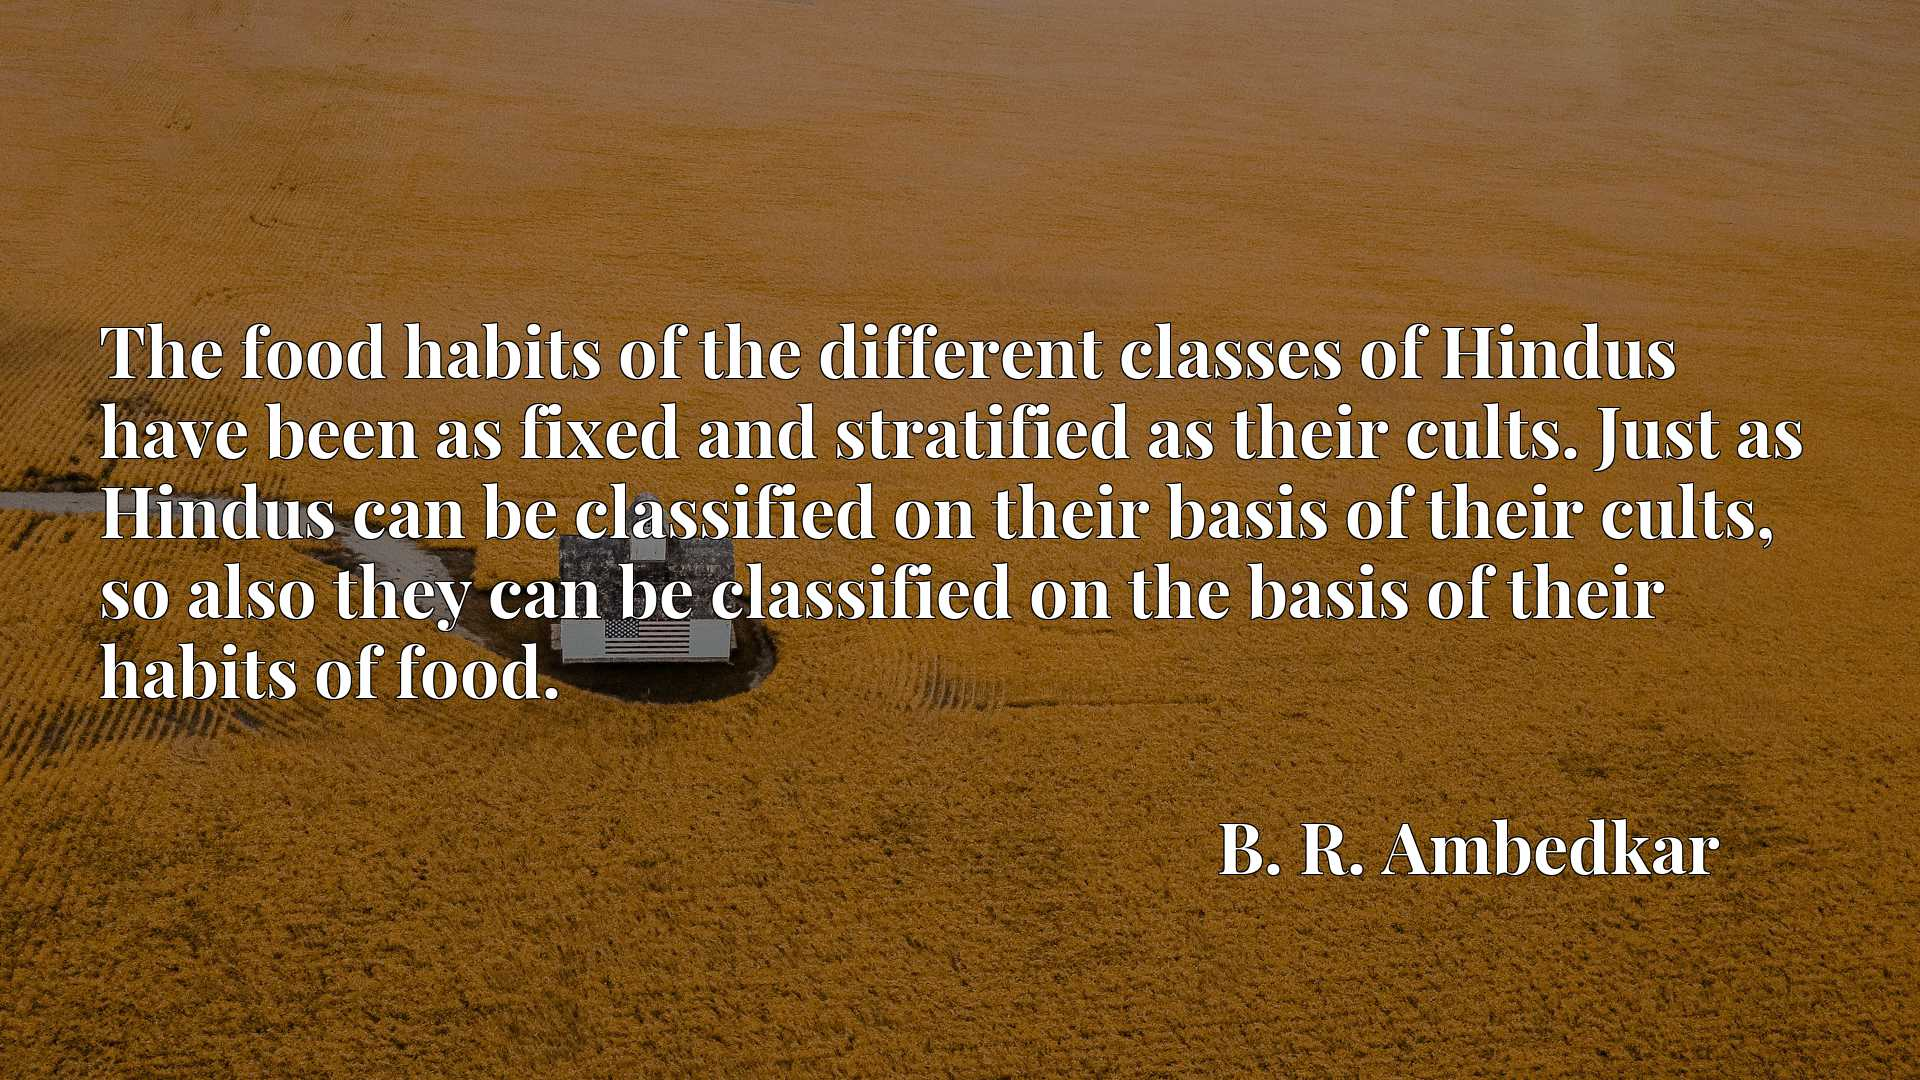 The food habits of the different classes of Hindus have been as fixed and stratified as their cults. Just as Hindus can be classified on their basis of their cults, so also they can be classified on the basis of their habits of food.